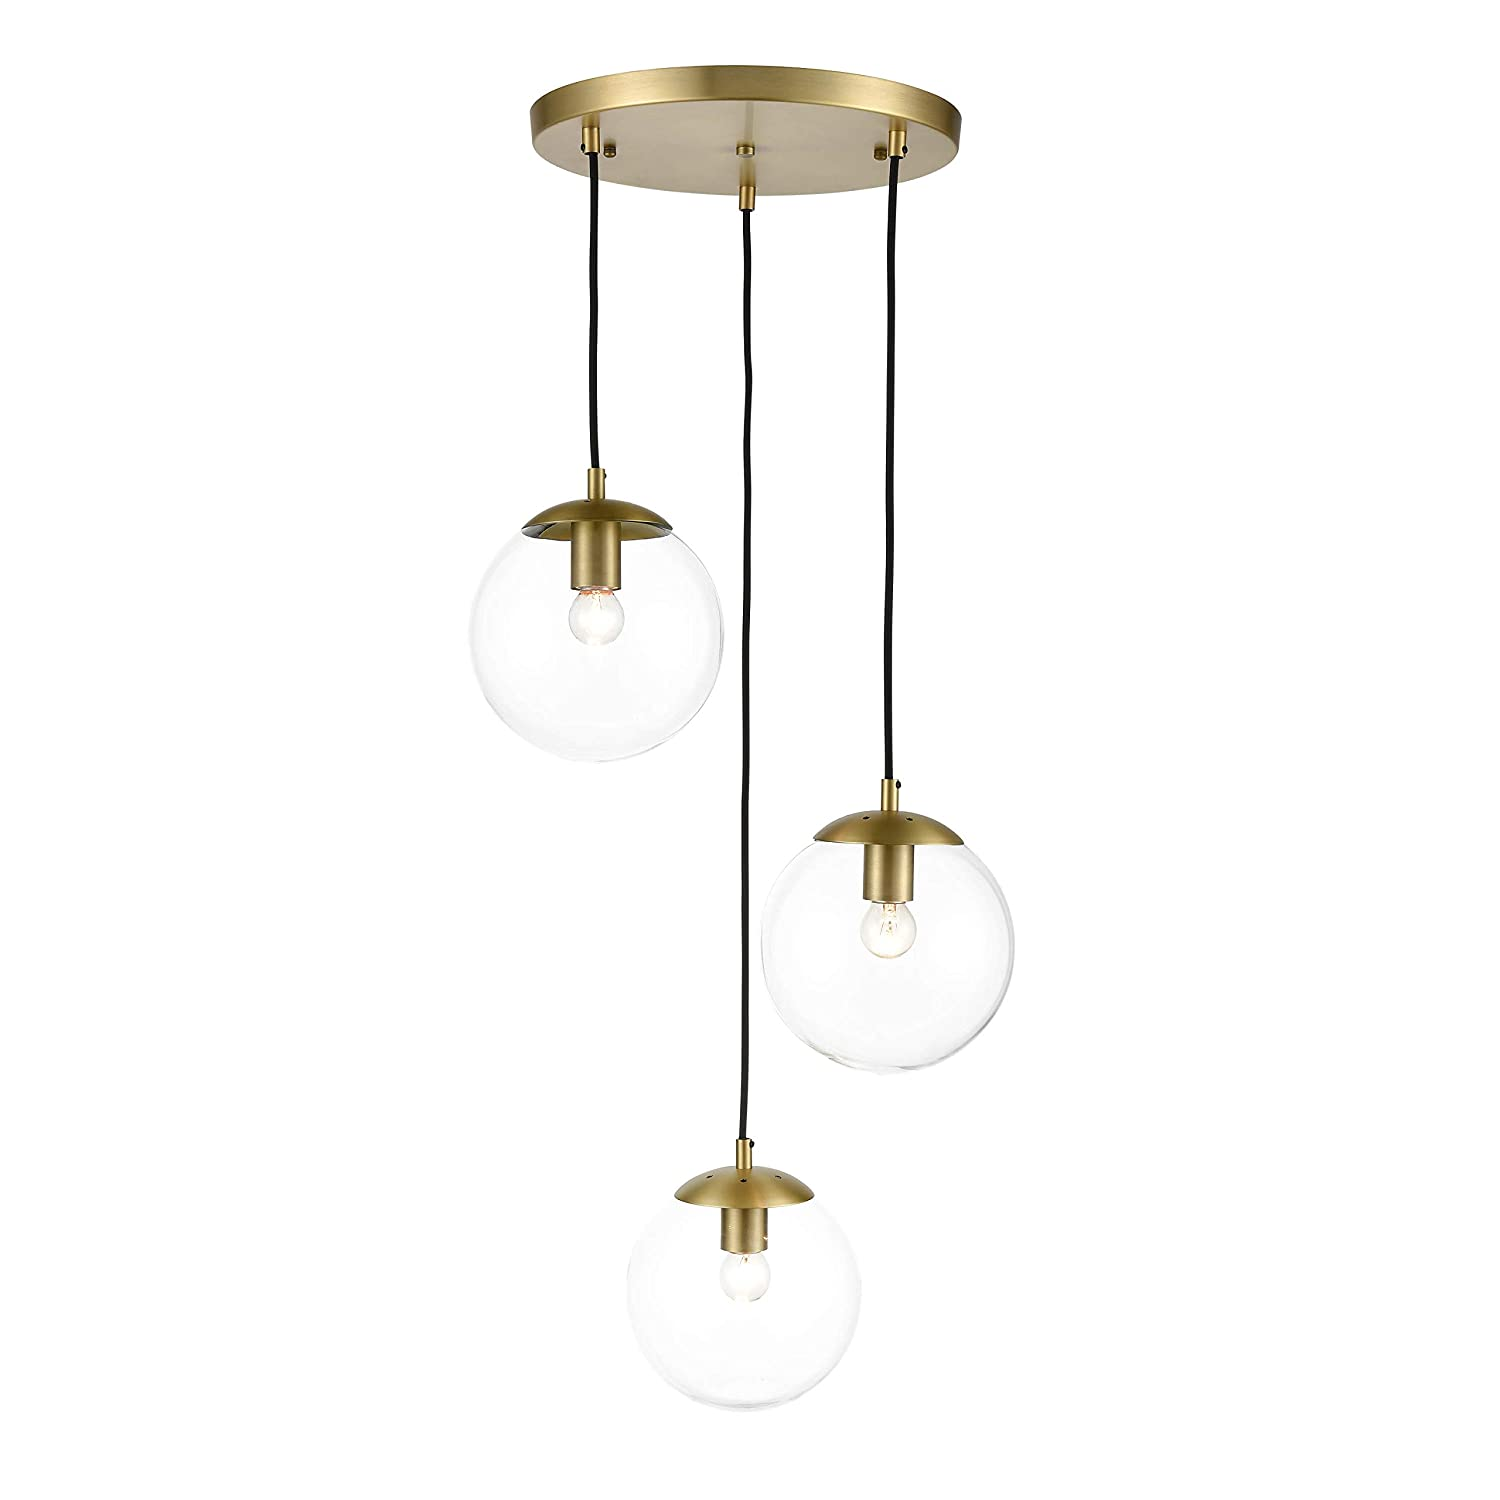 Light society tesler 3 light globe pendant lamp in brushed brass and clear glass globes with adjustable length cords retro mid century modern style